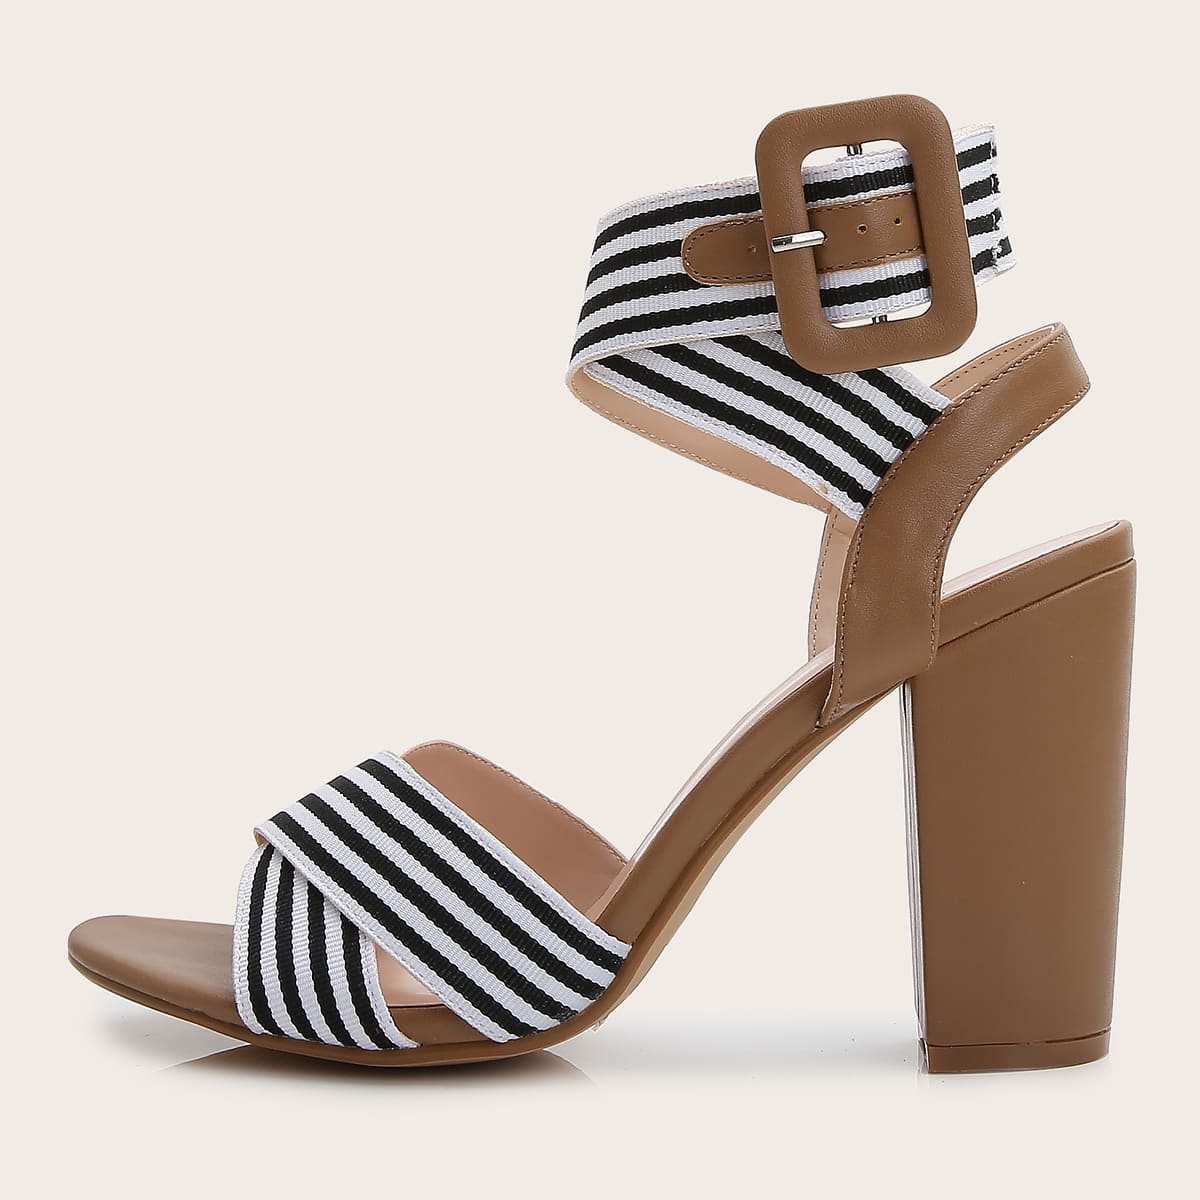 SHEIN / Striped Chunky Heeled Sandals